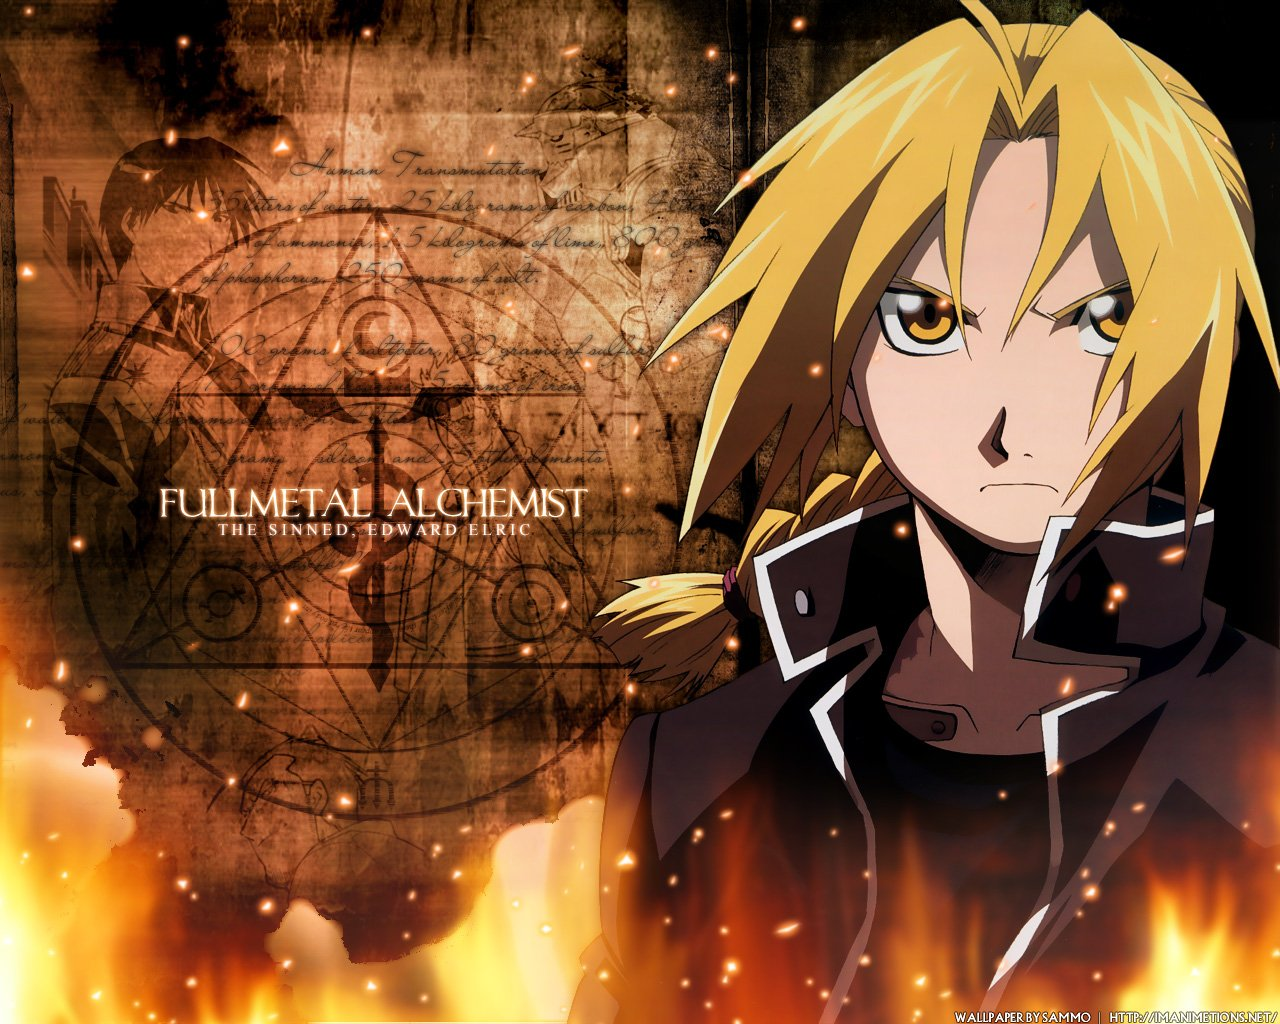 Fullmetal Alchemist Brotherhood Wallpaper hd images 1280x1024